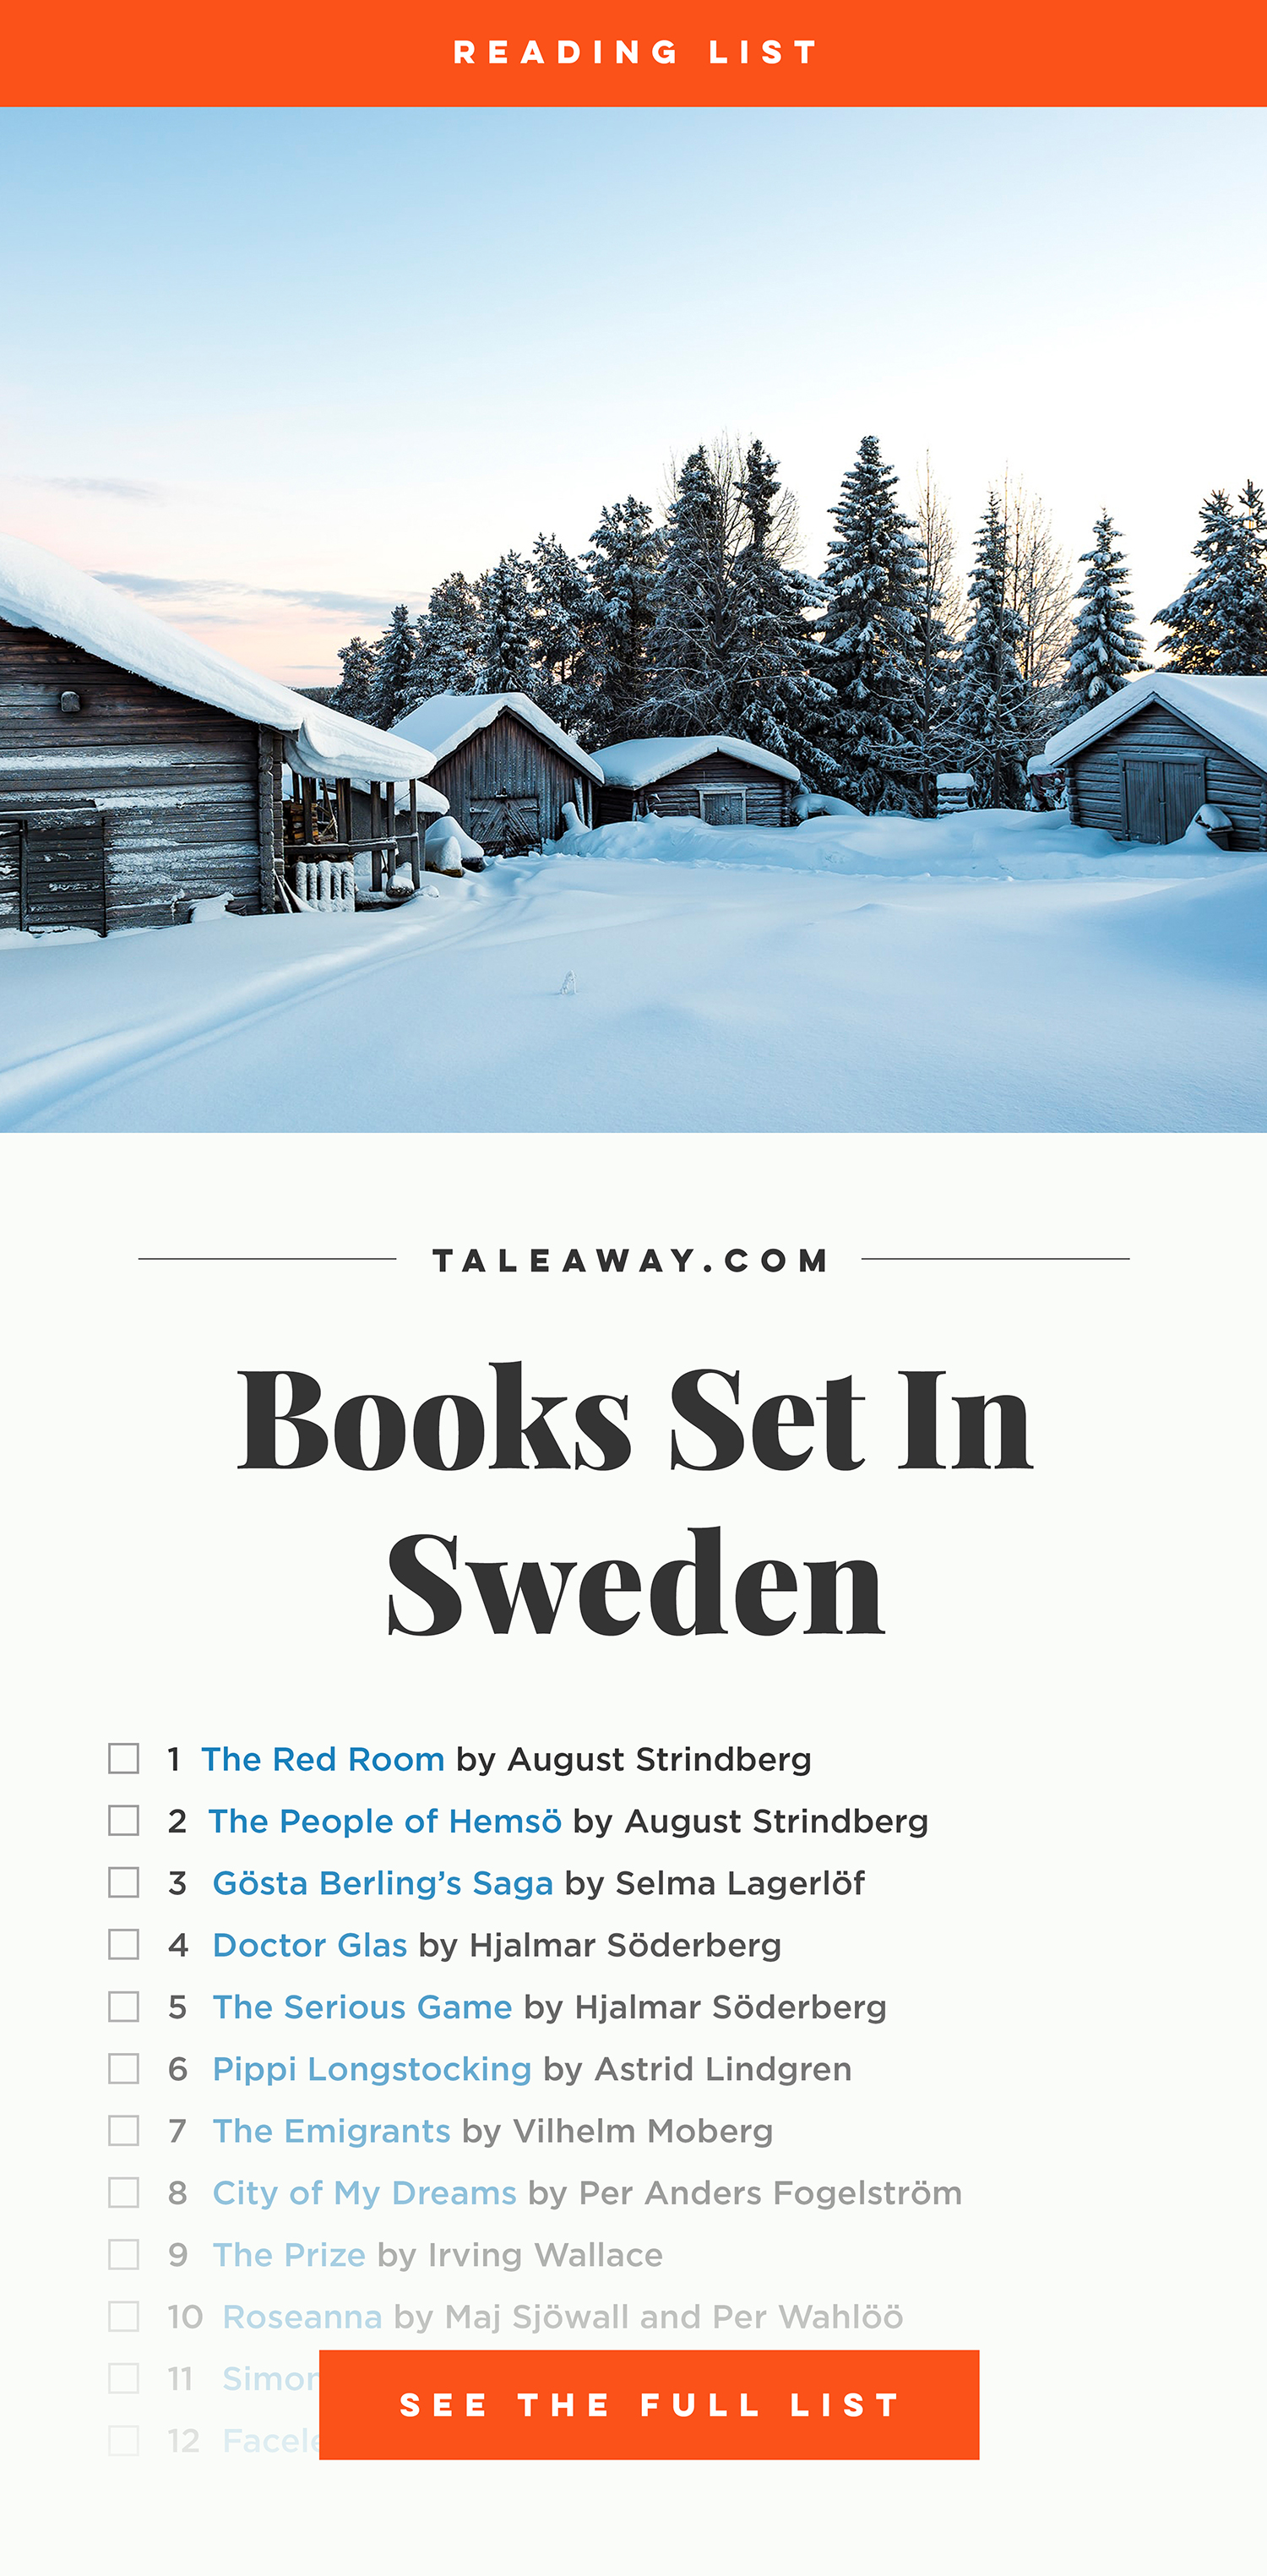 Books Set in Sweden. sweden books, swedish novels, sweden literature, sweden fiction, swedish authors, best books set in sweden, popular books set in sweden, books about sweden, sweden reading challenge, sweden reading list, stockholm books, gothenburg books, malmo books, sweden packing list, sweden travel, sweden history, sweden travel books, sweden books to read, books to read before going to sweden, novels set in sweden, books to read about sweden